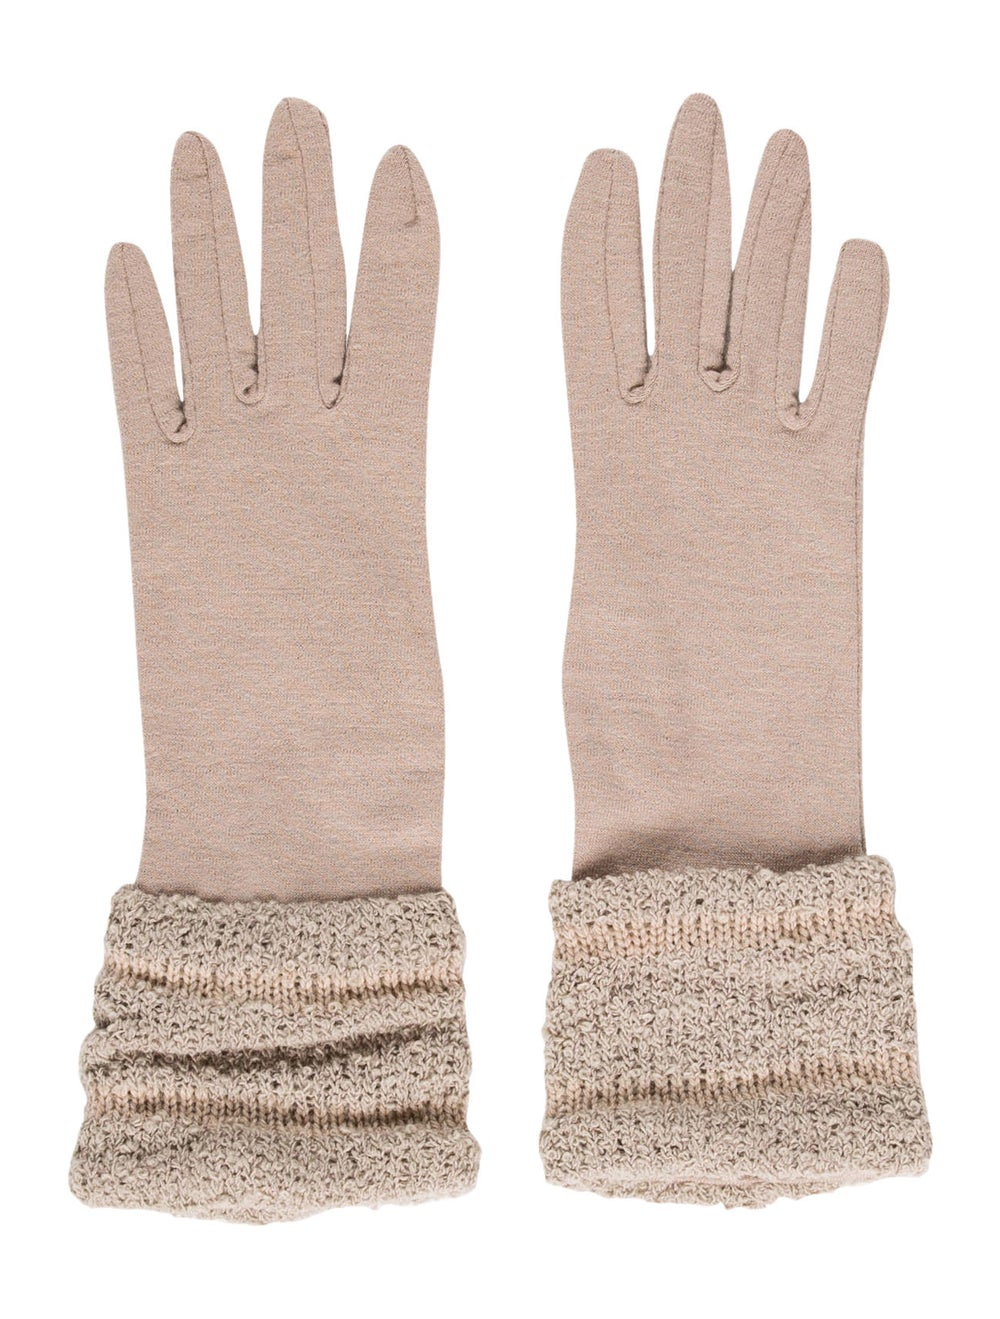 Patricia Underwood Wool Woven Gloves Tan - image 1